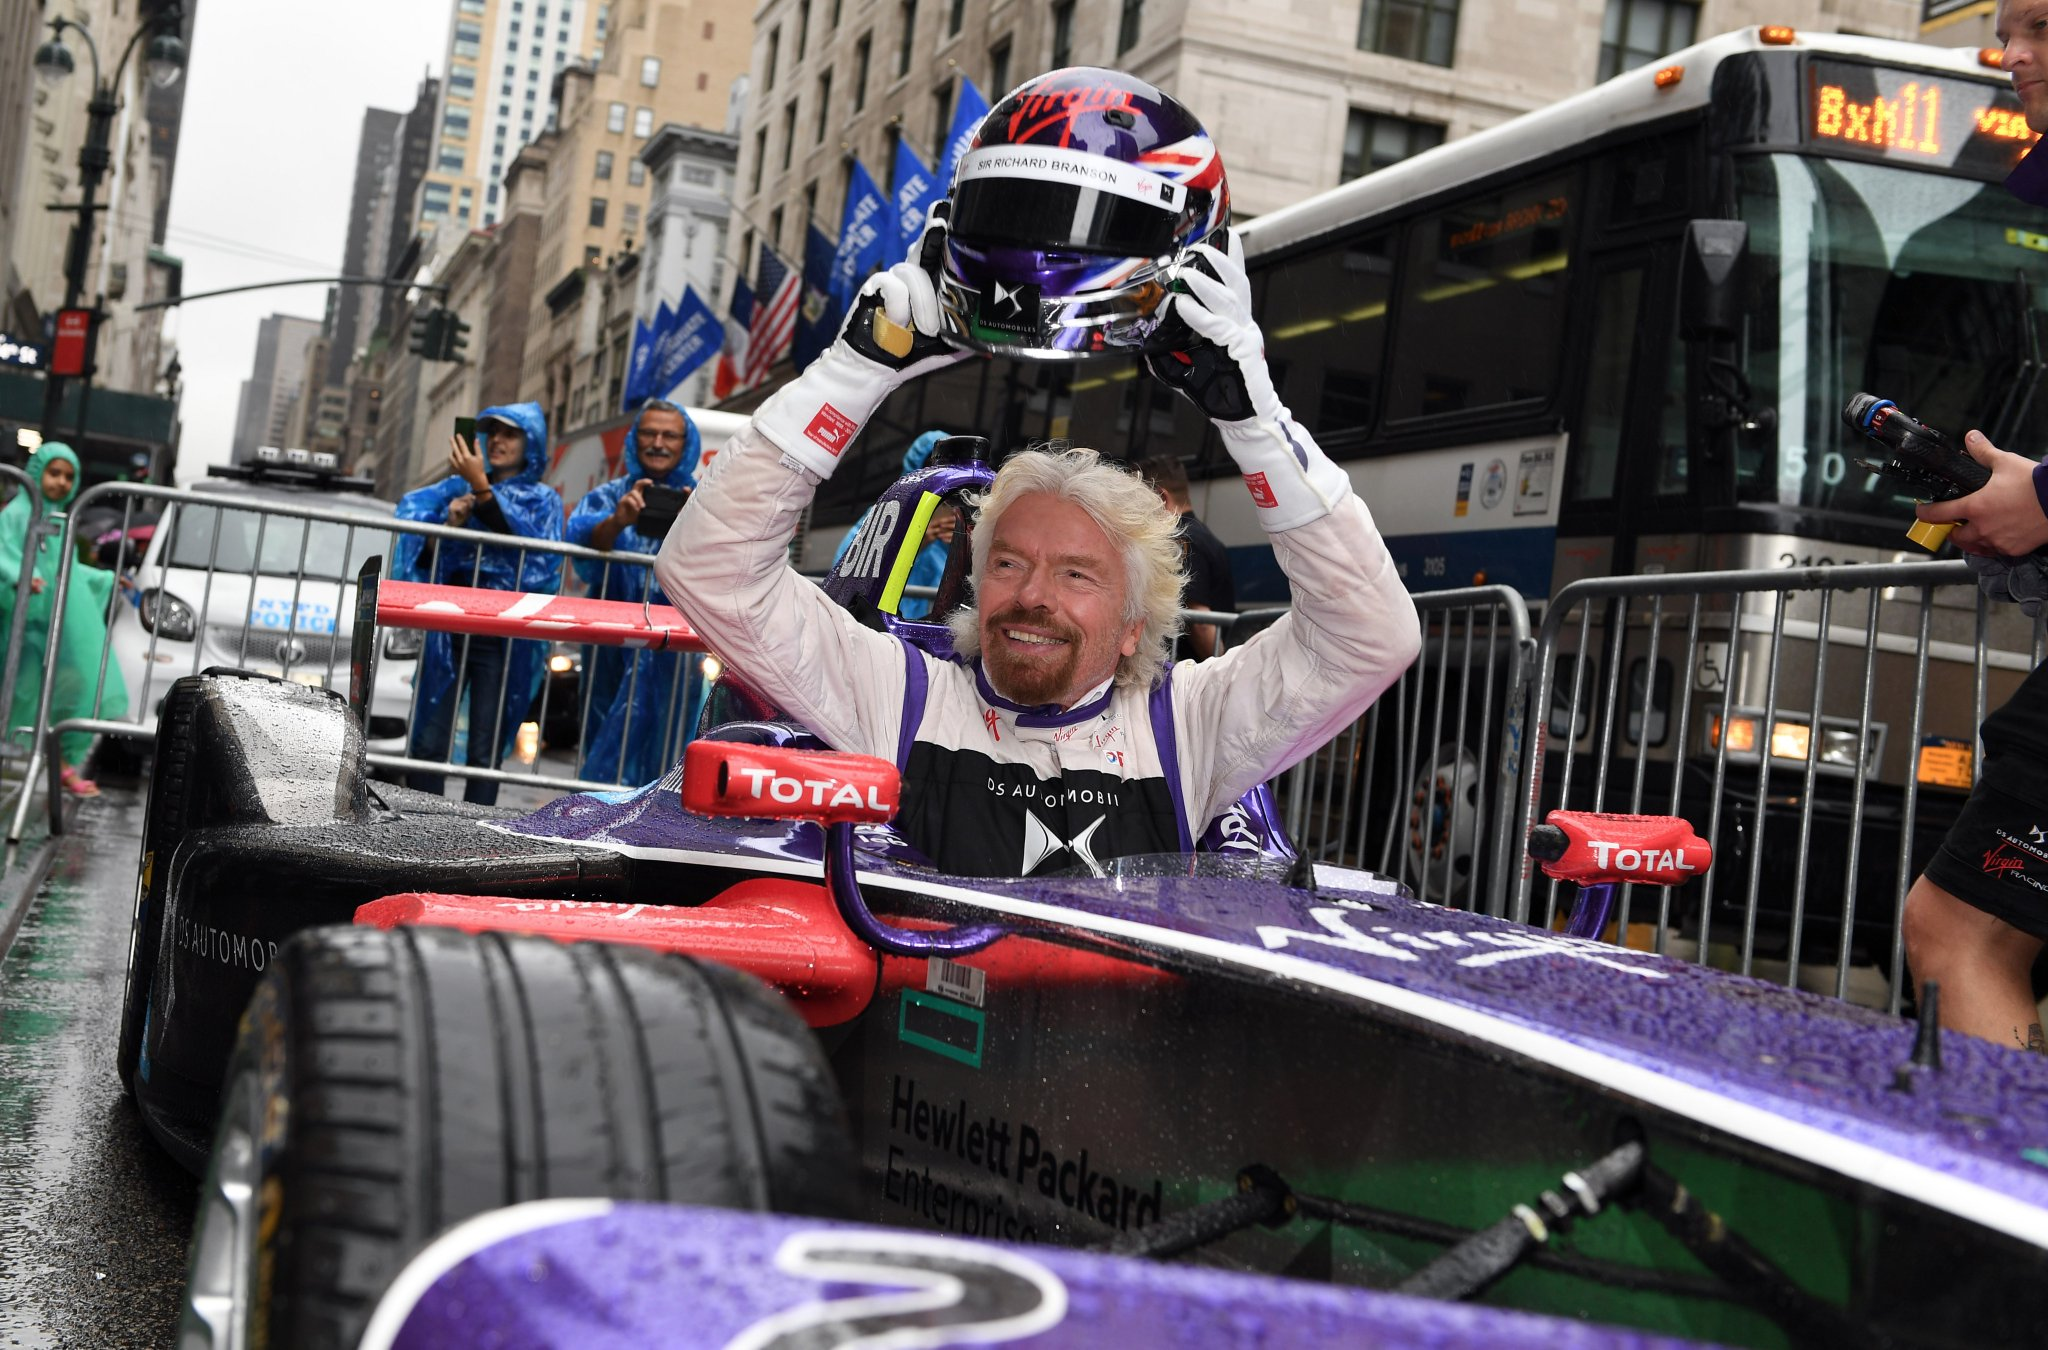 Richard-Branson-gets-out-of-Virgin-Formula-E-Car-New-York